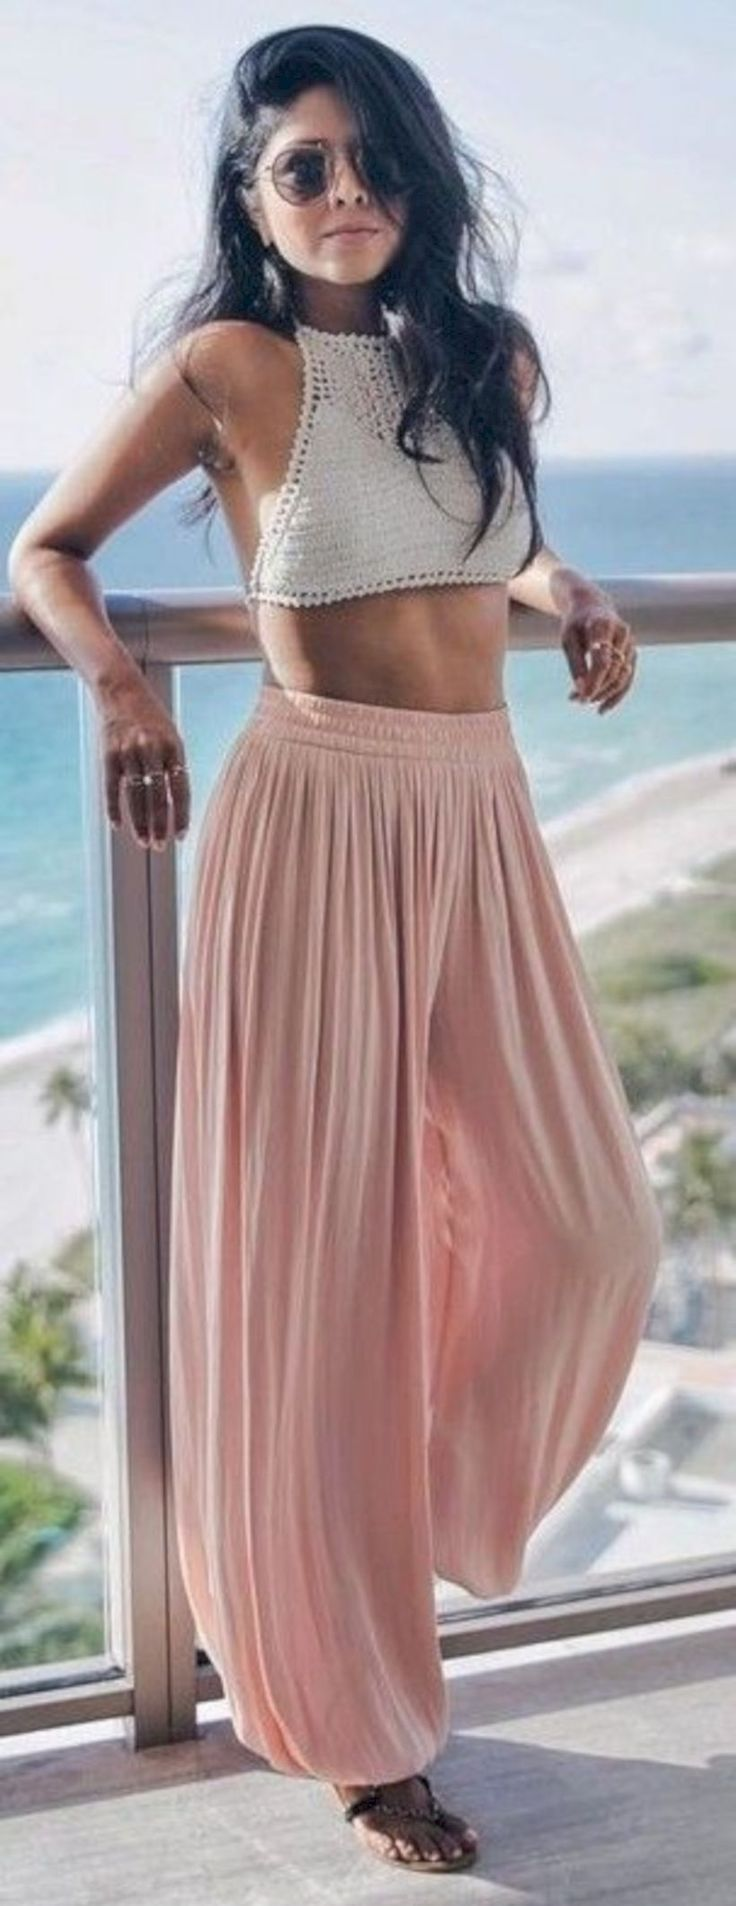 nice 39 Outfit Essentials You Need for Summer Break https://attirepin.com/2018/02/16/39-outfit-essentials-need-summer-break/